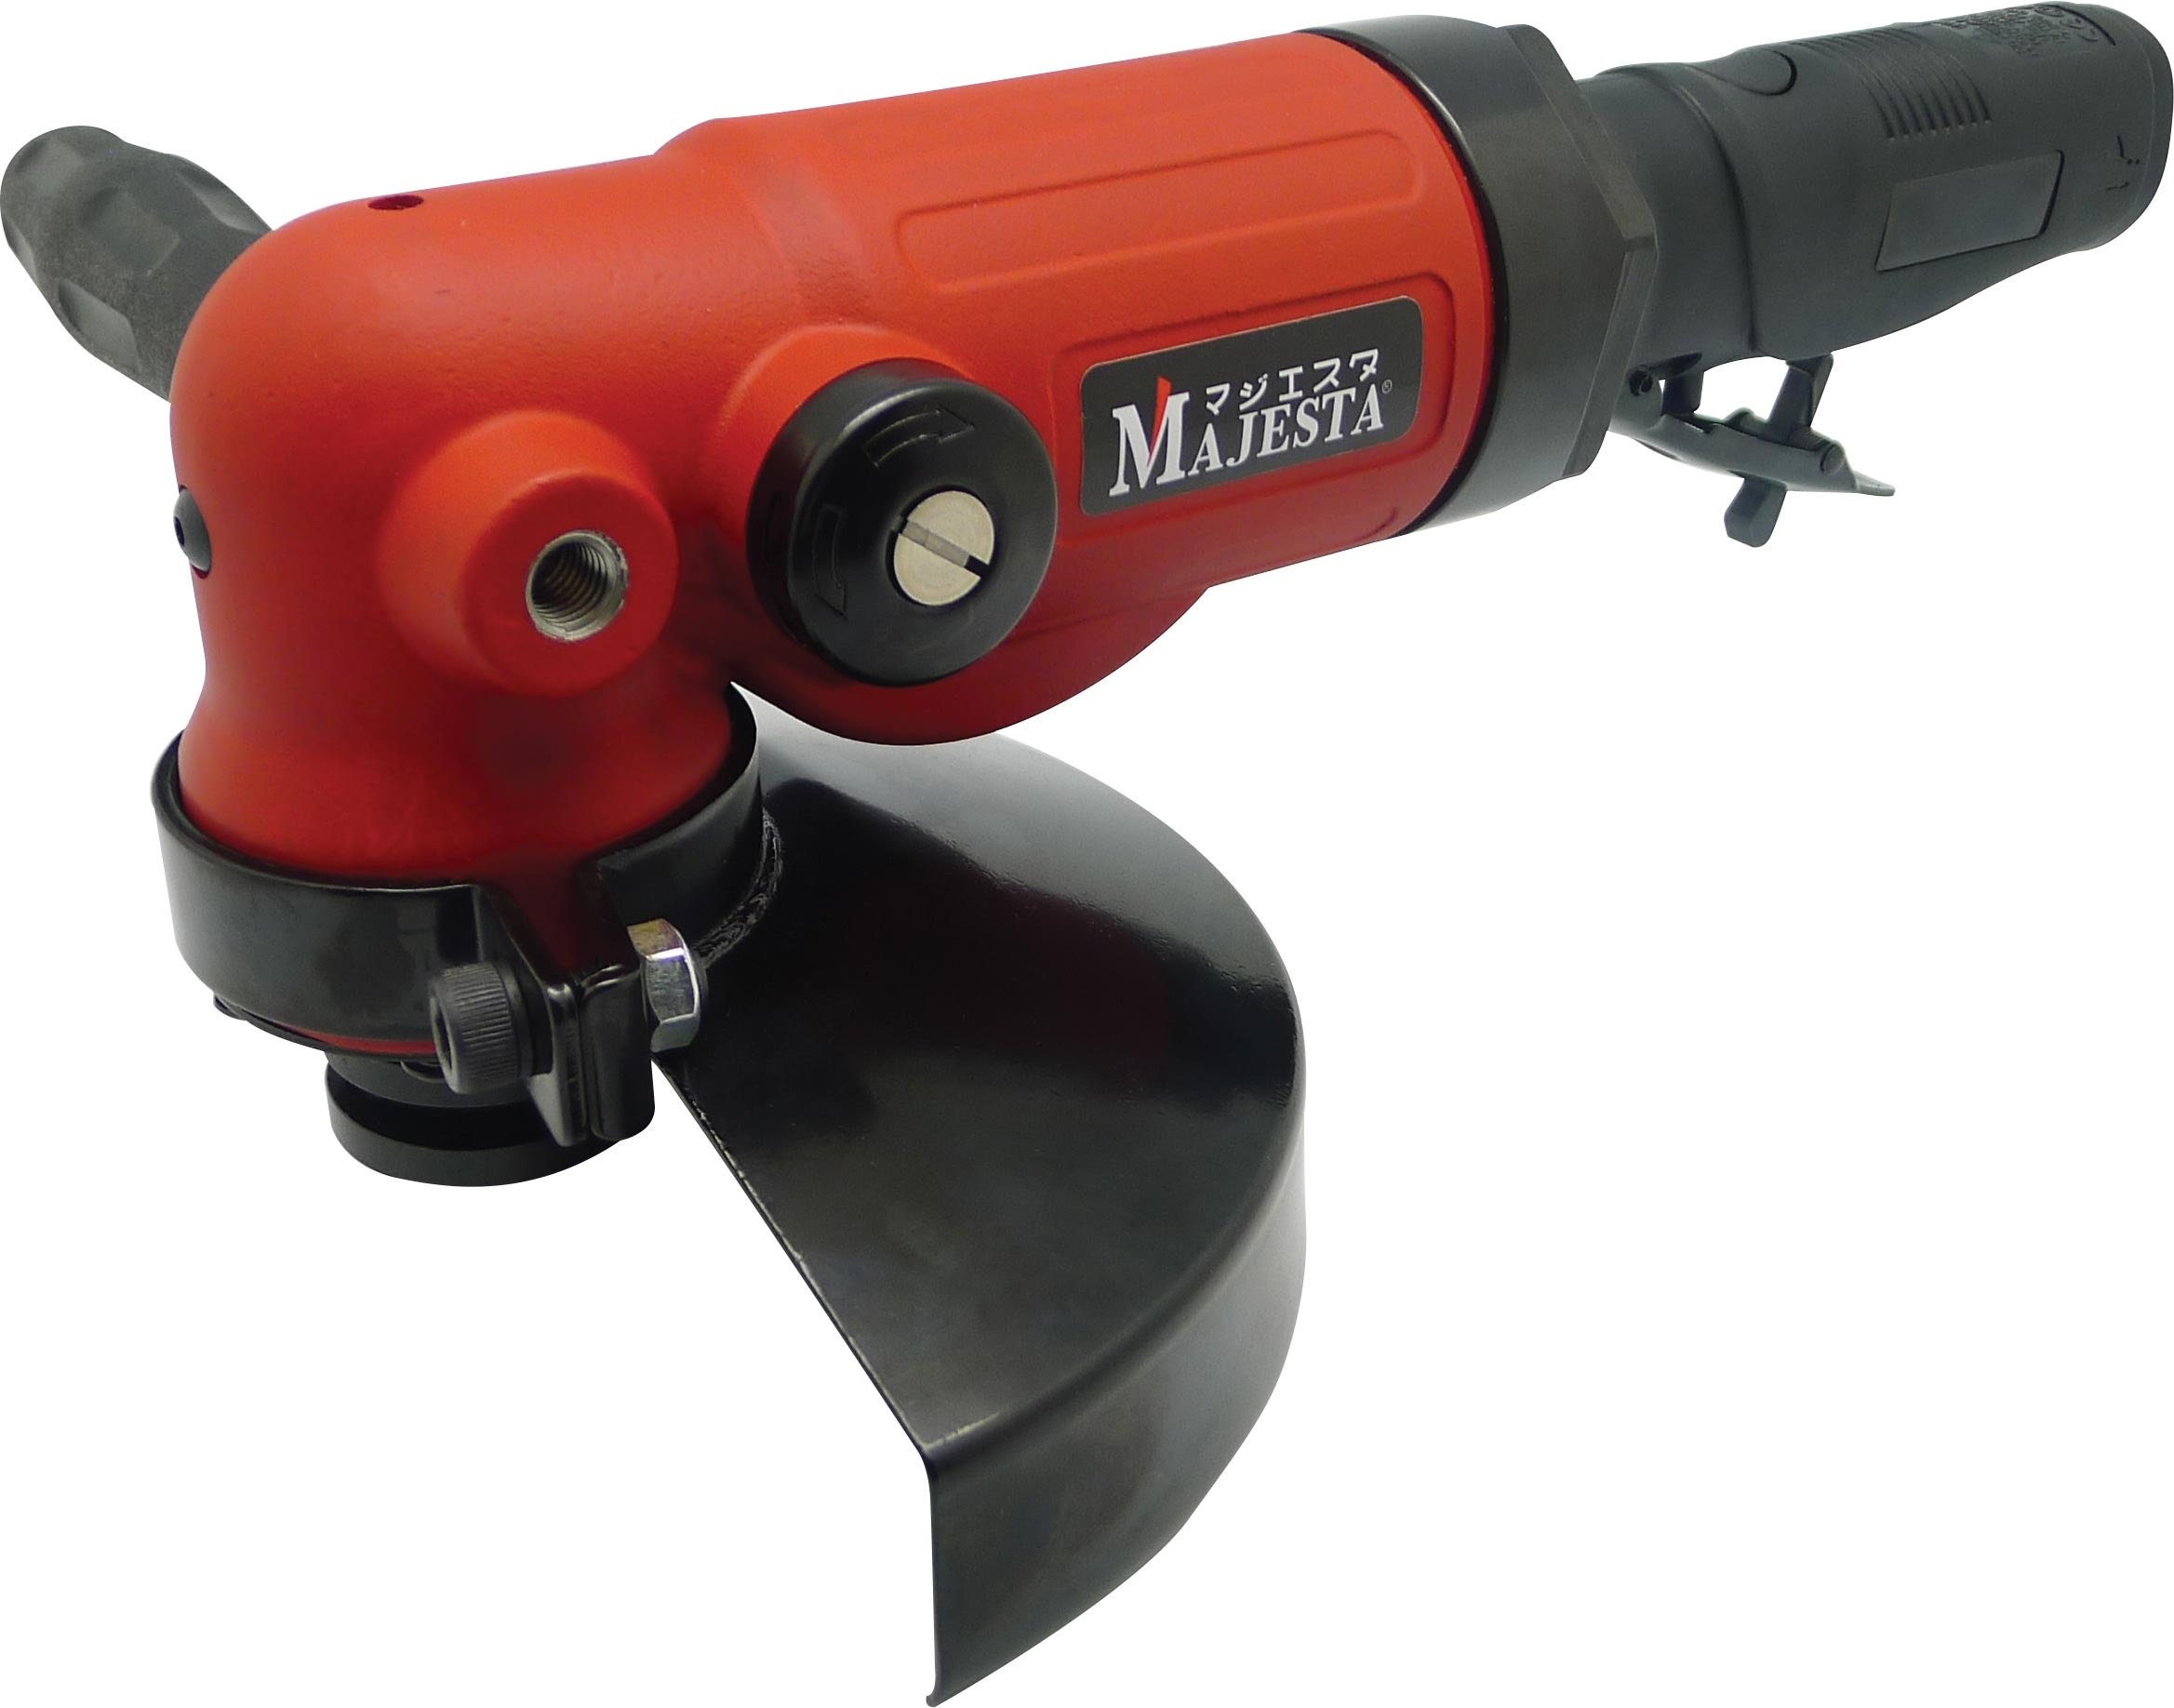 "MAJESTA AIR ANGLE GRINDER 7"" HEAVY DUTY AG-890R"